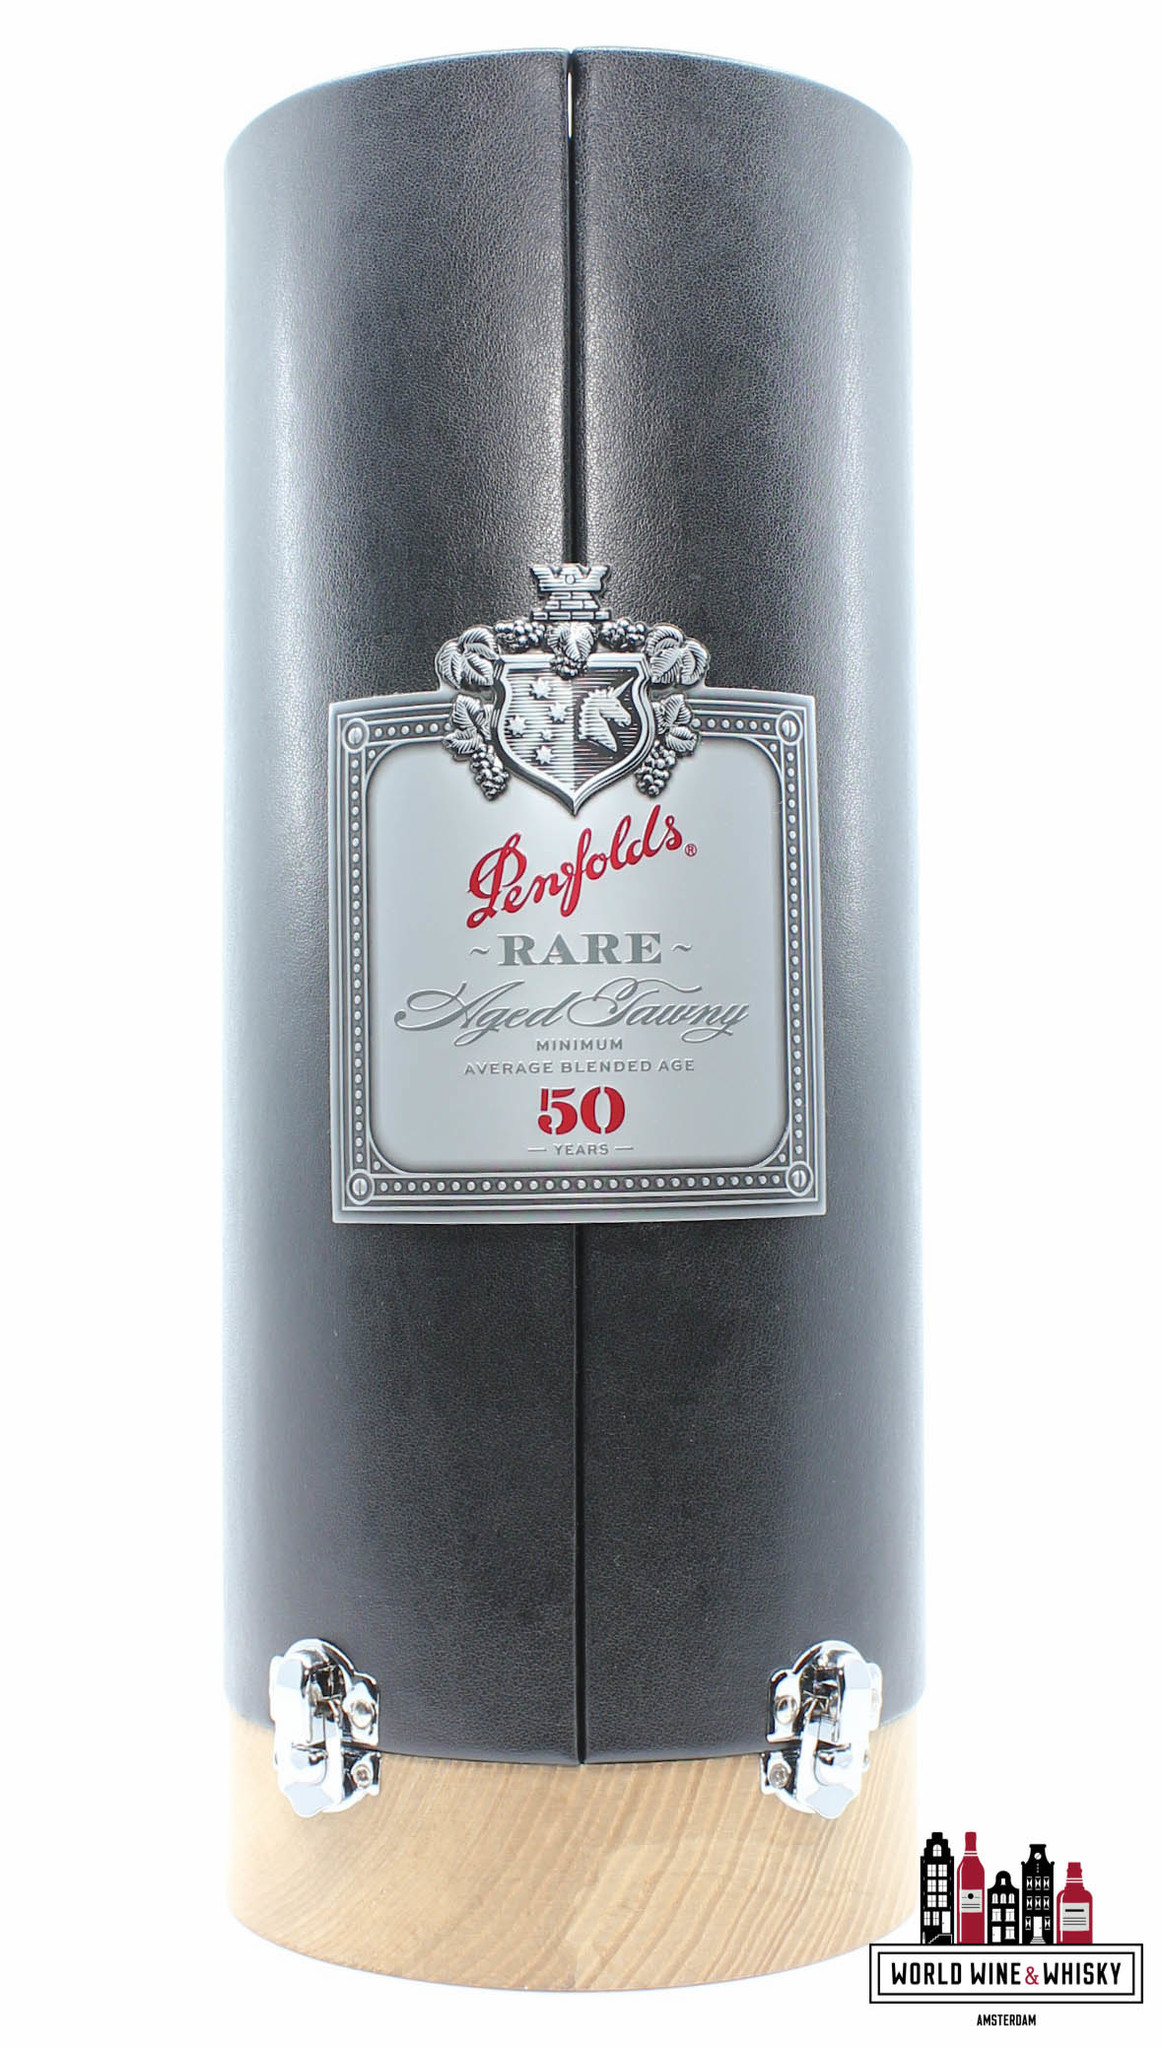 Penfolds Penfolds 50 Years Old - Rare Aged Tawny - Series No 04 19.5% (1 of 330)